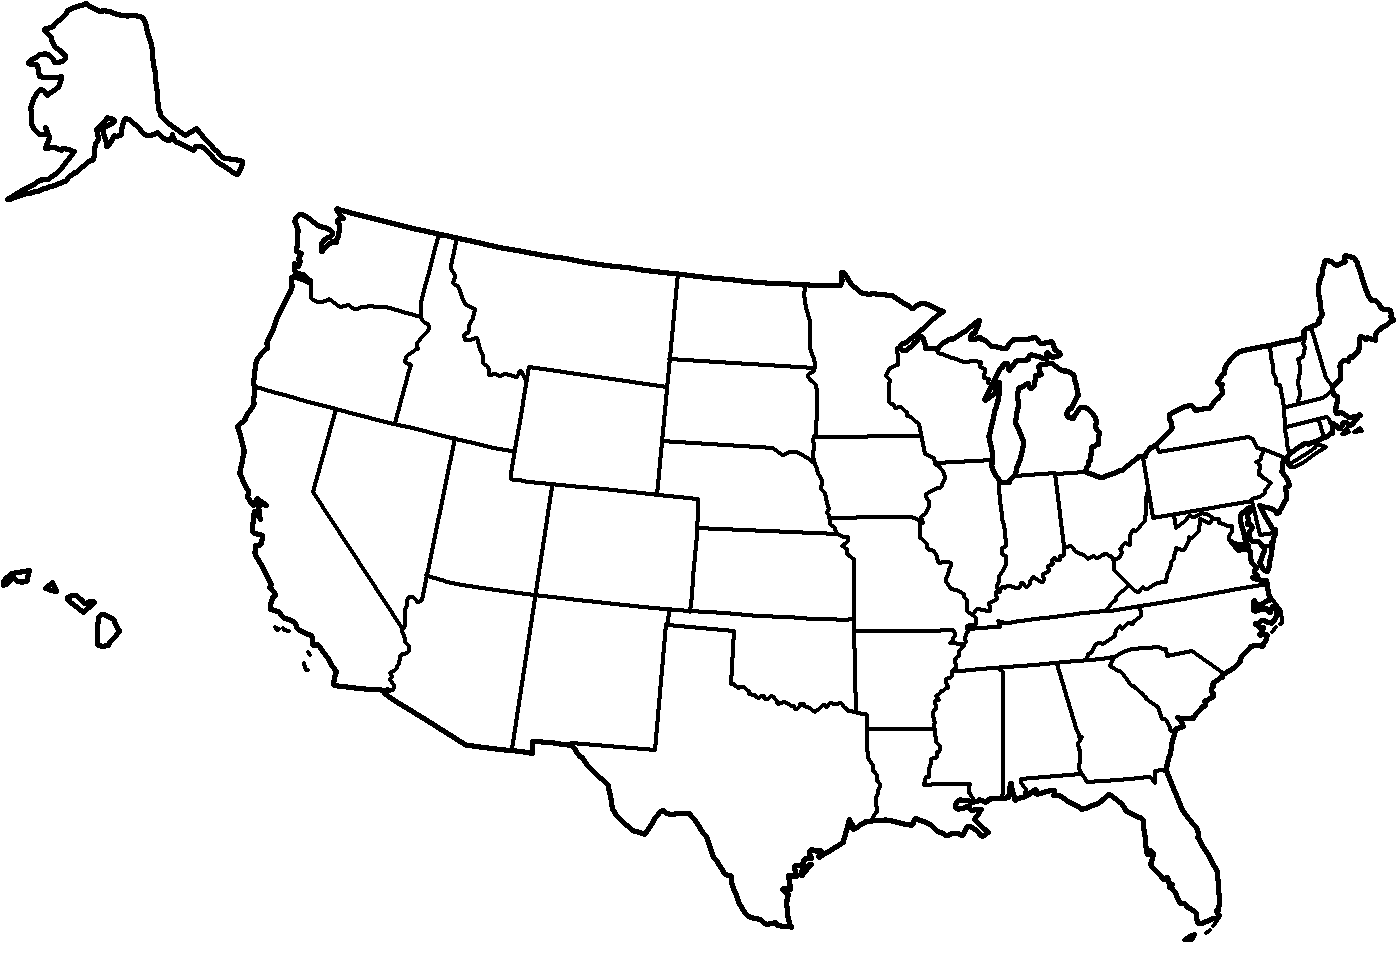 united states map coloring page amazoncom united states of america map usa coloring art united states page coloring map